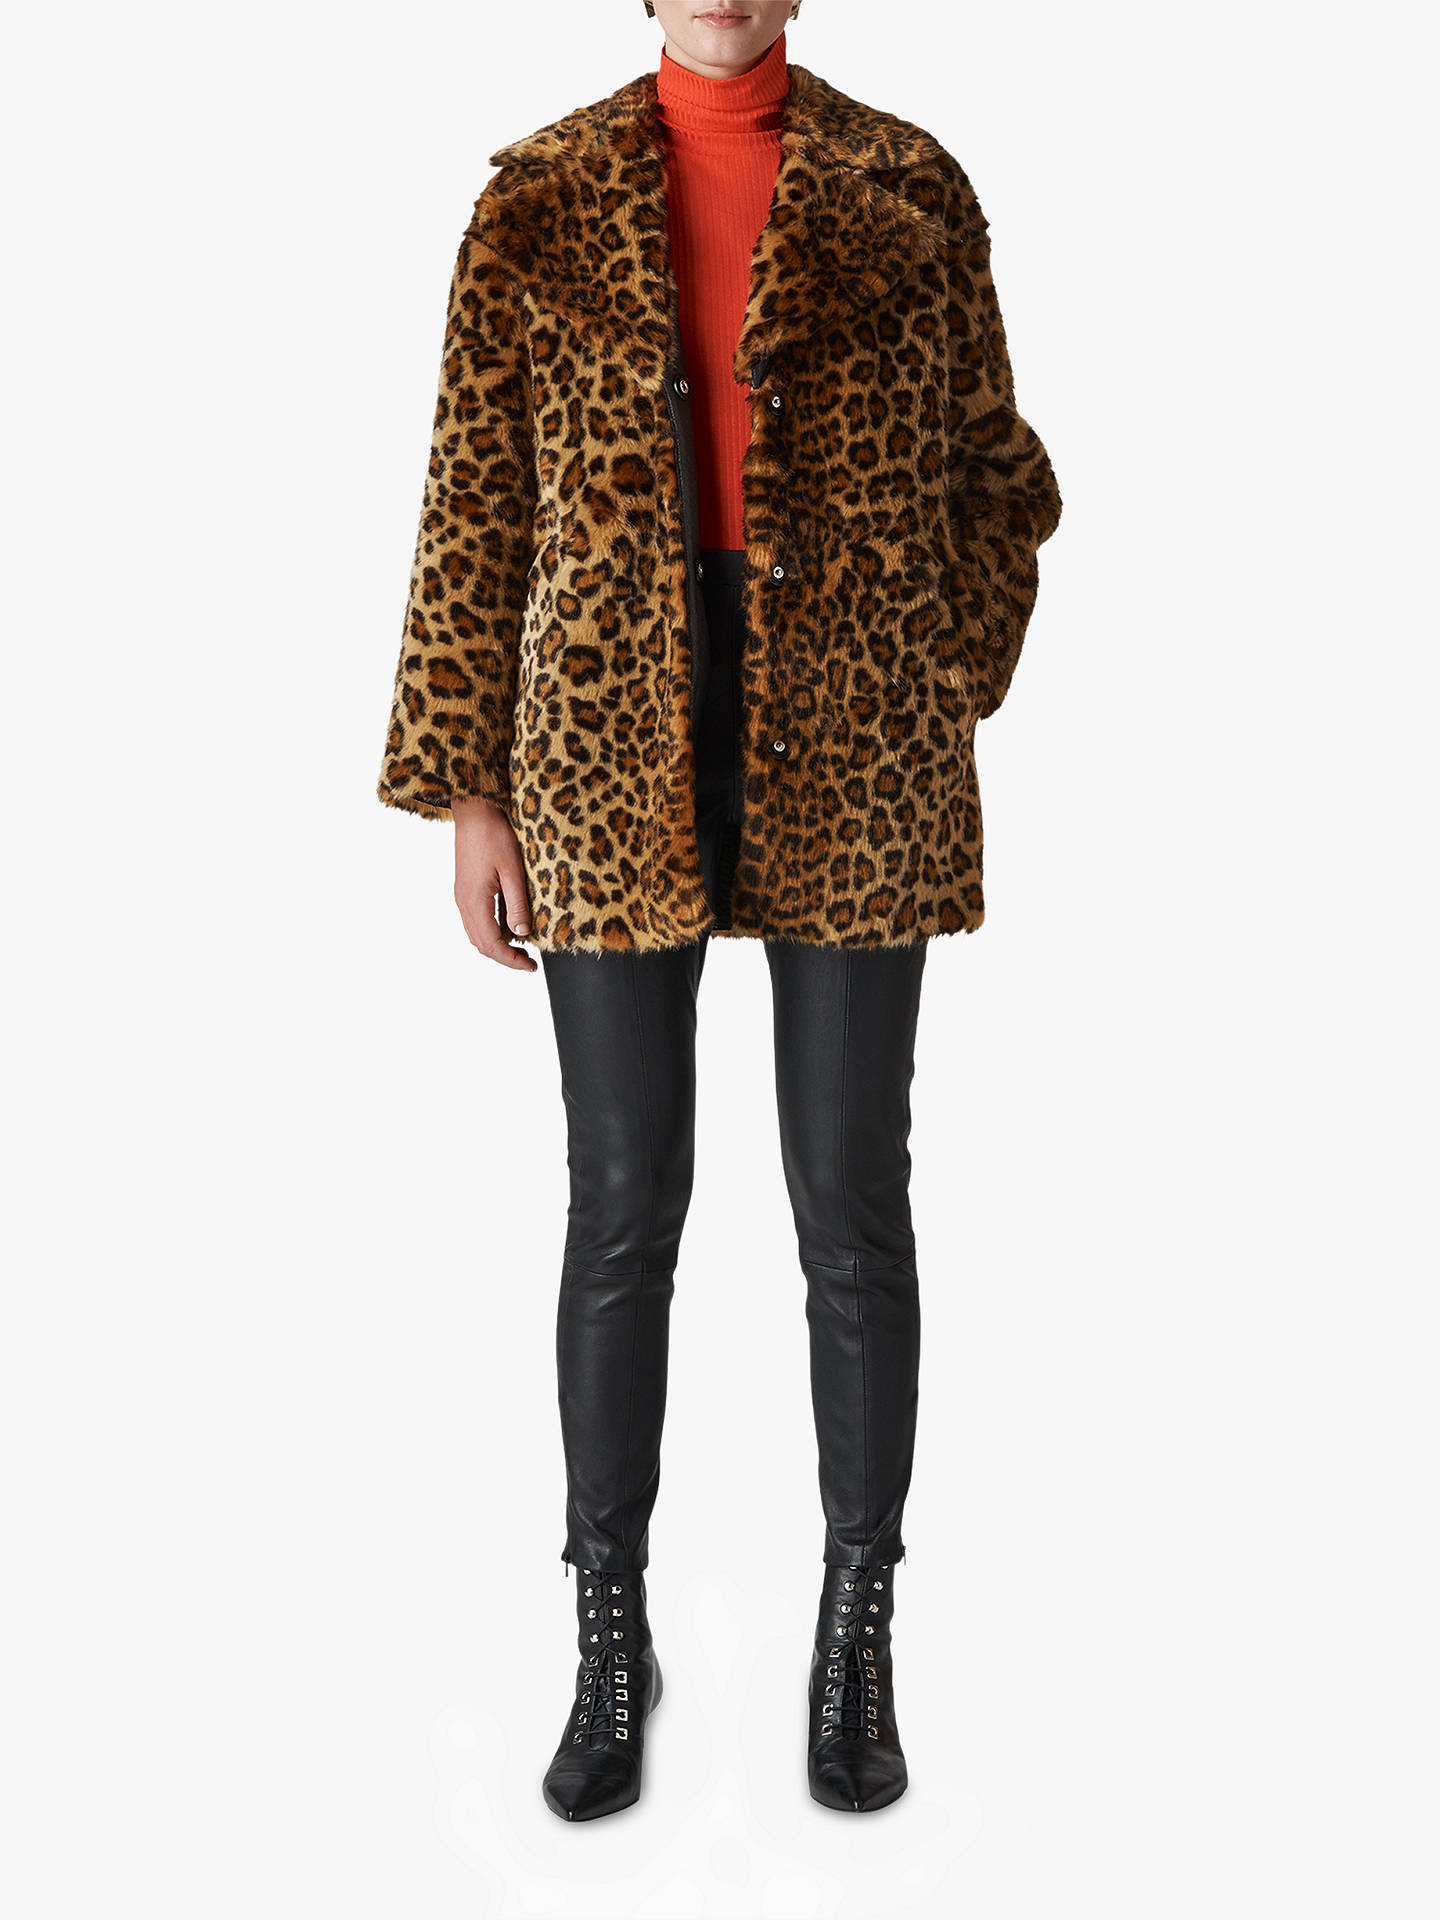 896f6d4980 Buy Whistles Animal Faux Fur Cocoon Coat, Multi, S Online at johnlewis.com  ...